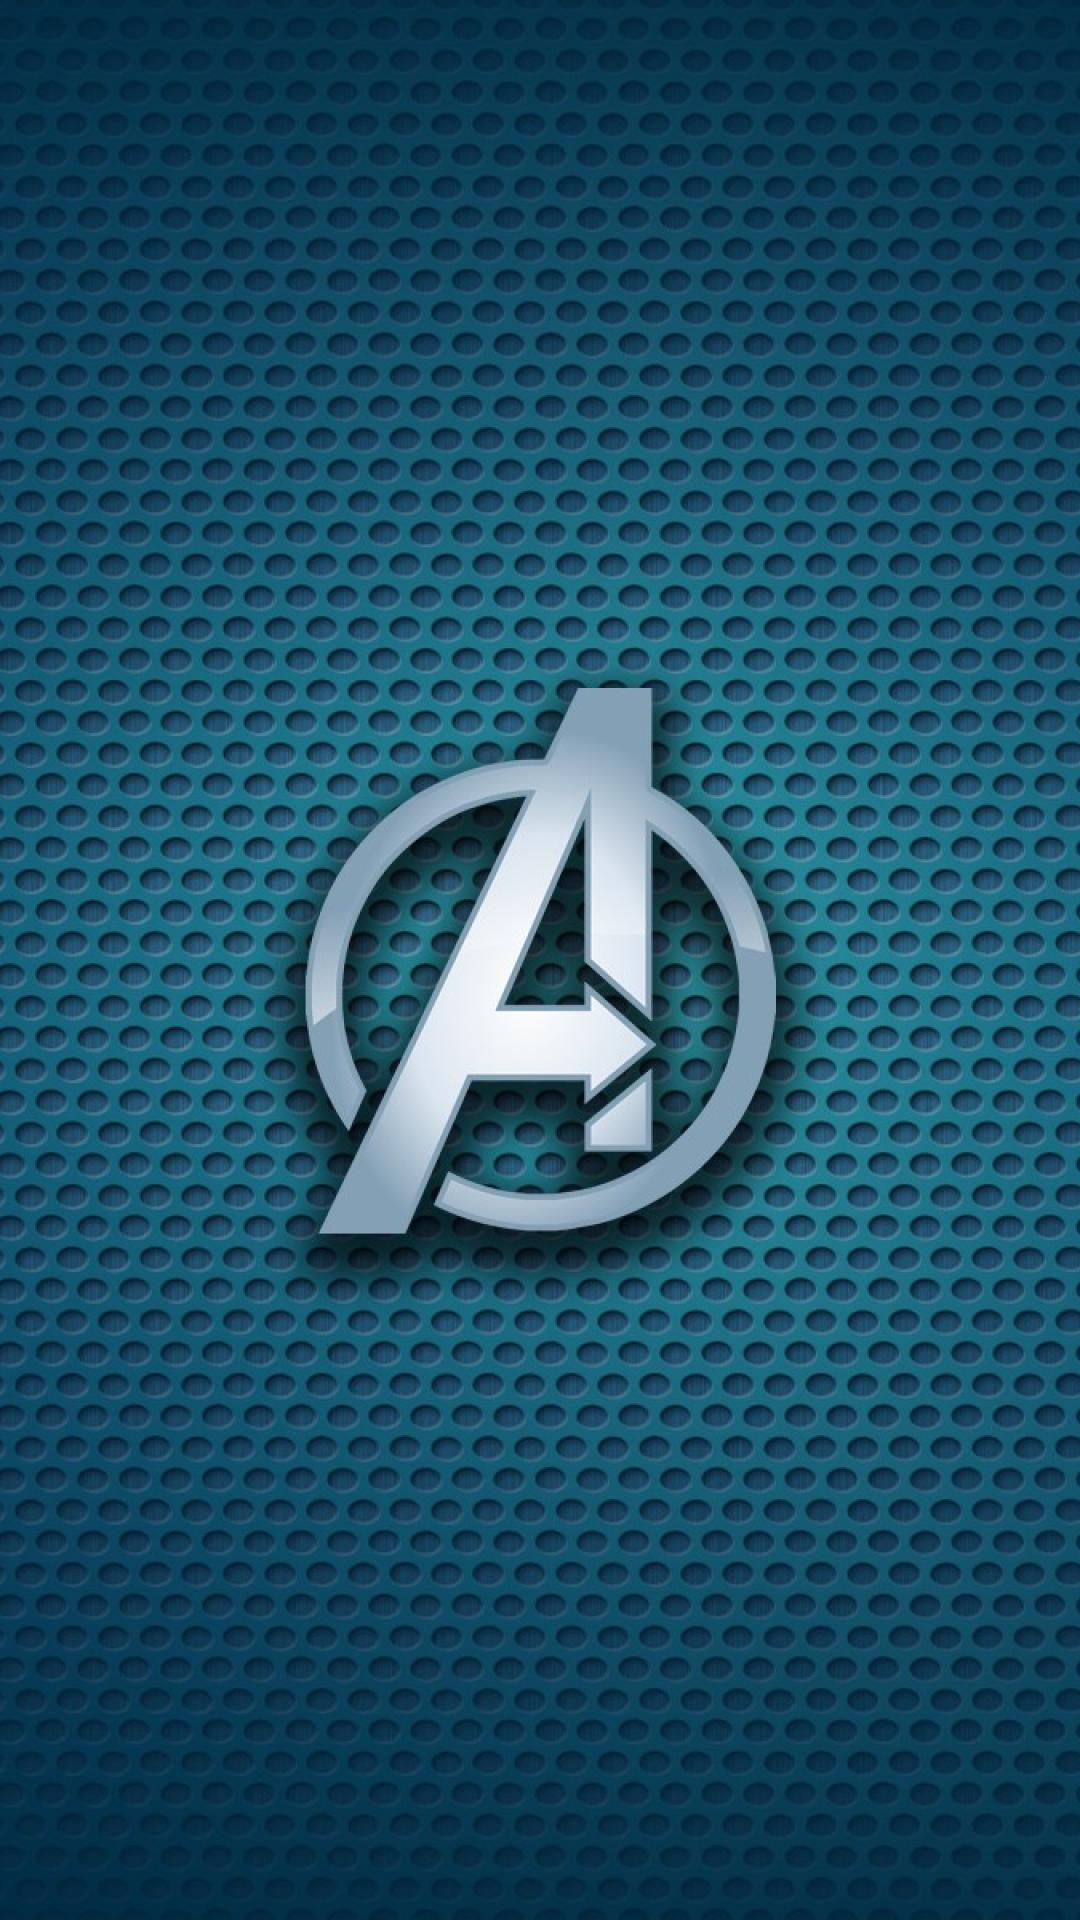 Avengers logo iphone wallpapers top free avengers logo - Avengers symbol wallpaper ...